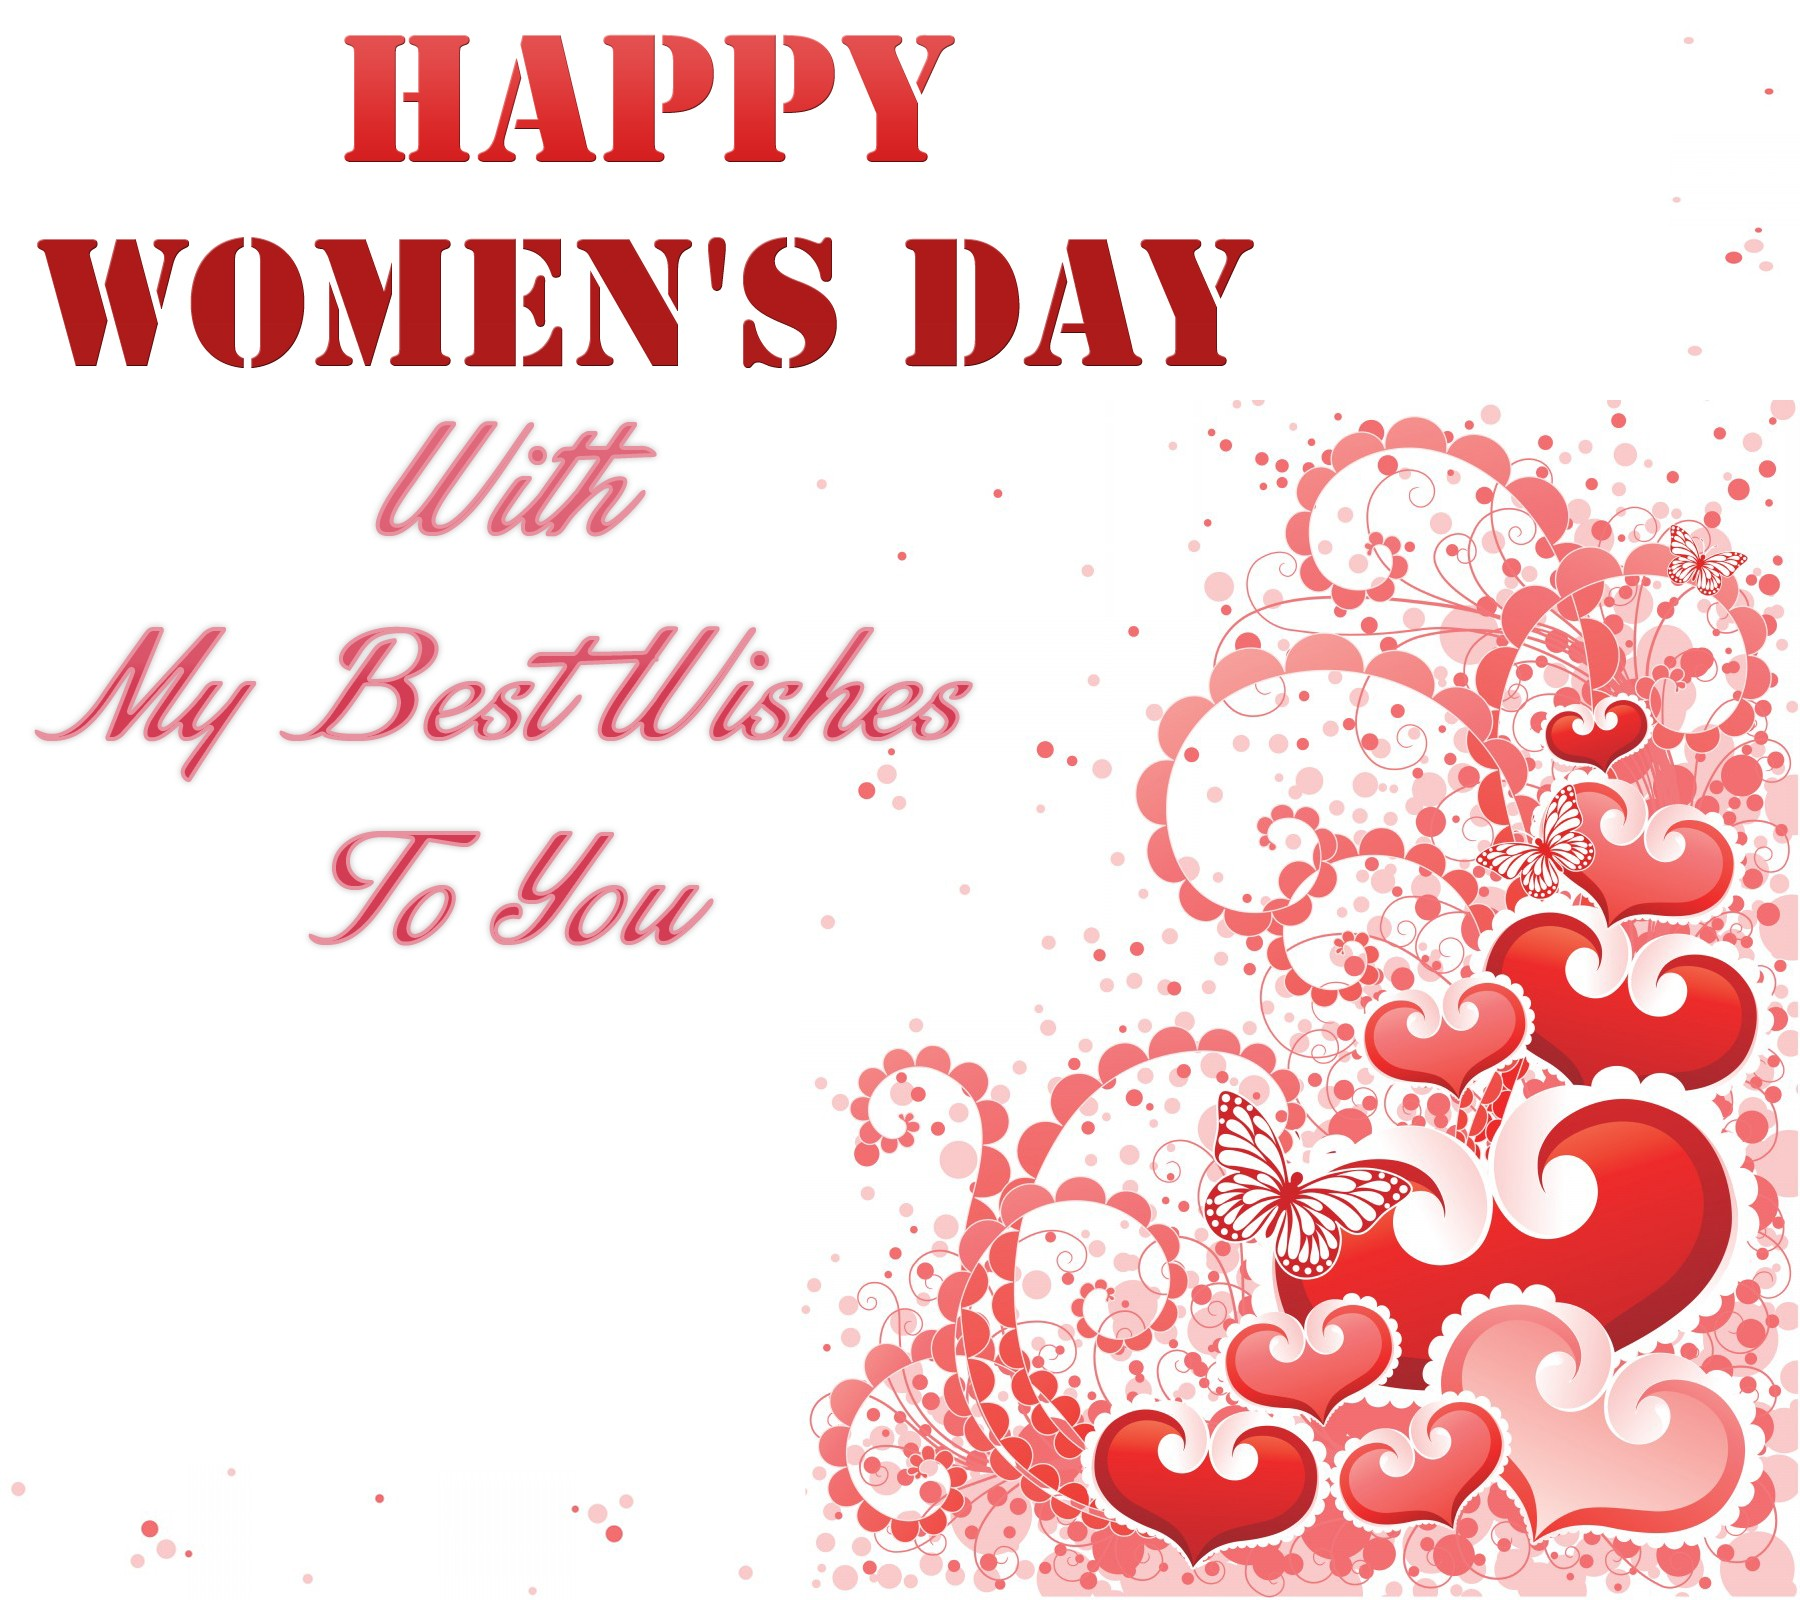 Wishes for International Women's Day for all